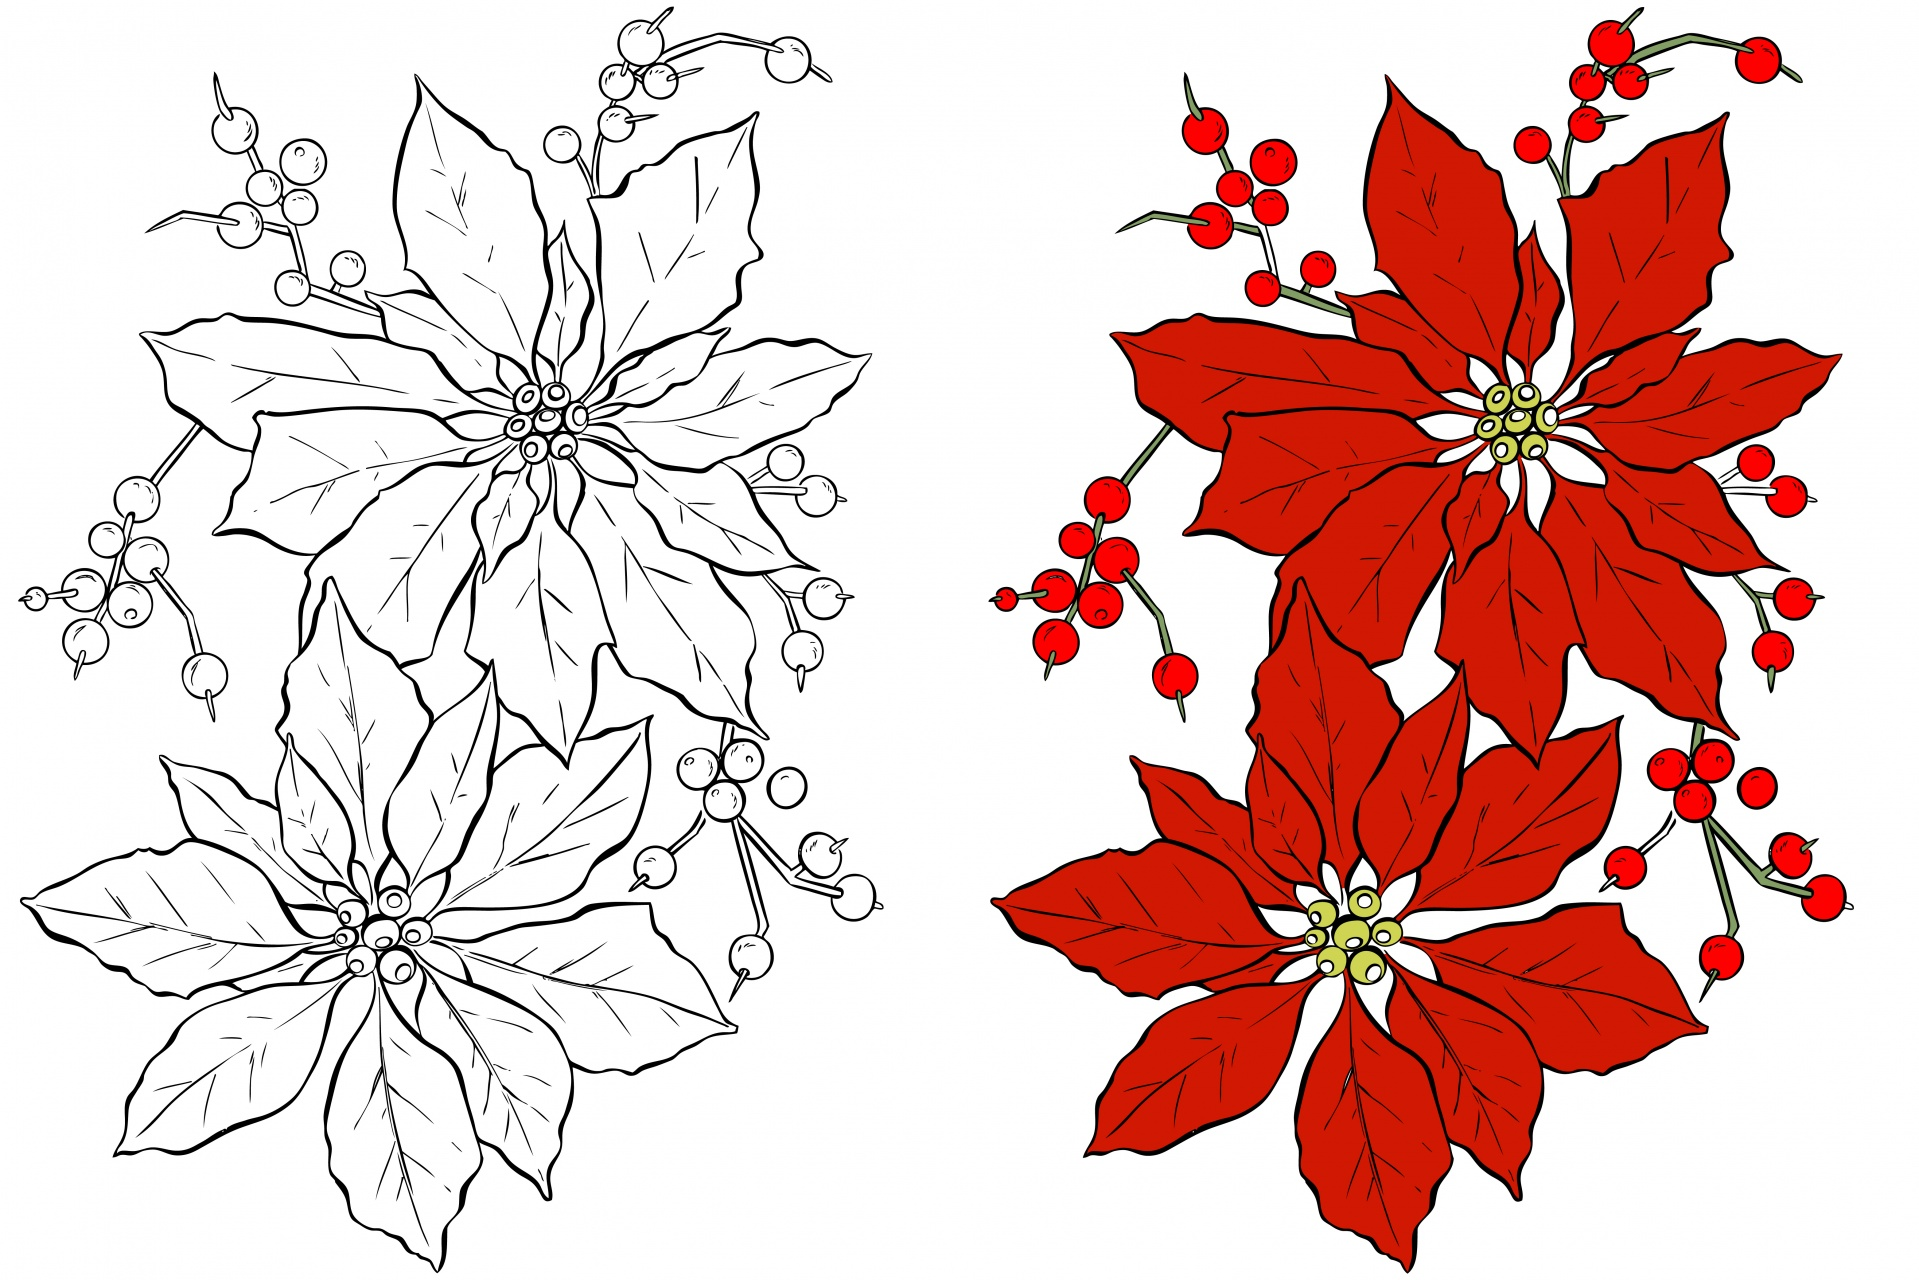 Poinsettia Coloring Page Free Coloring Pages Download | Xsibe ...